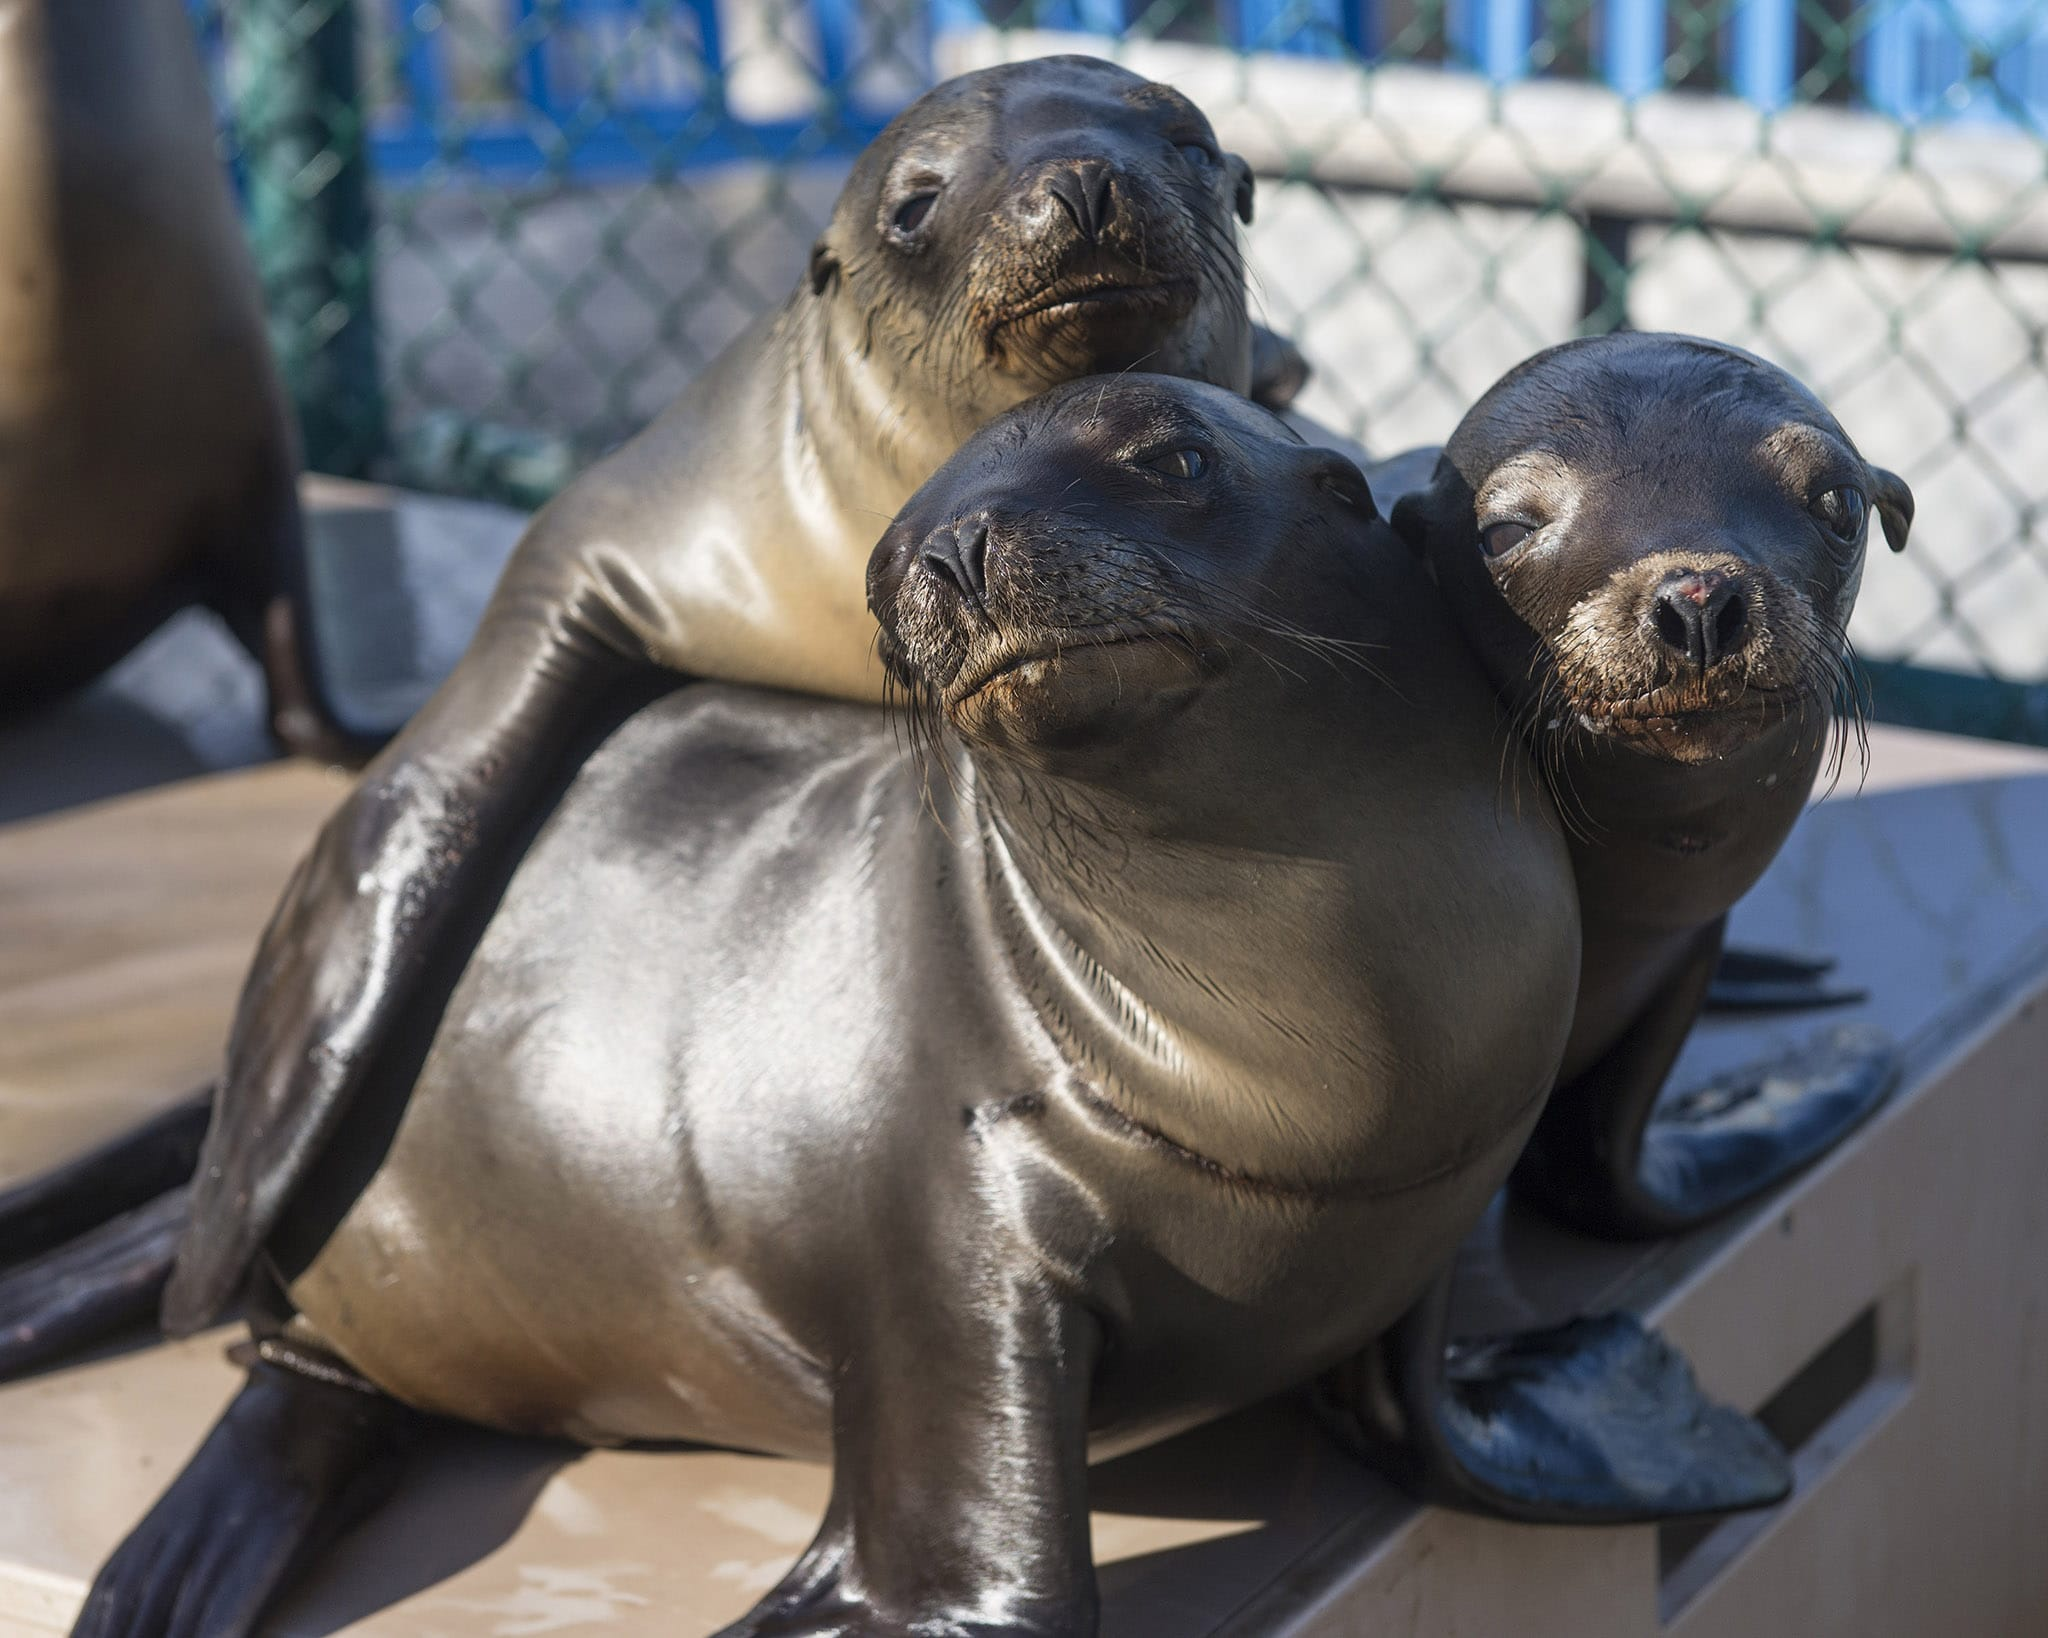 SAN DIEGO, CA - JANUARY 27: In this handout image provided by SeaWorld San Diego, California sea lion pups recover at SeaWorld San Diego's Animal Rescue Center January 27, 2015 in San Diego, California. The marine park, along with other rehabilitation facilities along the California coastline, is seeing a dramatic increase in the number of ailing sea lions stranded on beaches this year. The young animals, six to eight months old, are found extremely lethargic, malnourished and dehydrated. It's not known with certainty why the region is seeing a larger number of strandings this early in 2015, however, there could be insufficient food sources for the sea lions. SeaWorld San Diego has rescued 62 marine mammals since Jan. 1, and 60 of those are California sea lions. (Photo by Mike Aguilera/SeaWorld San Diego via Getty Images)